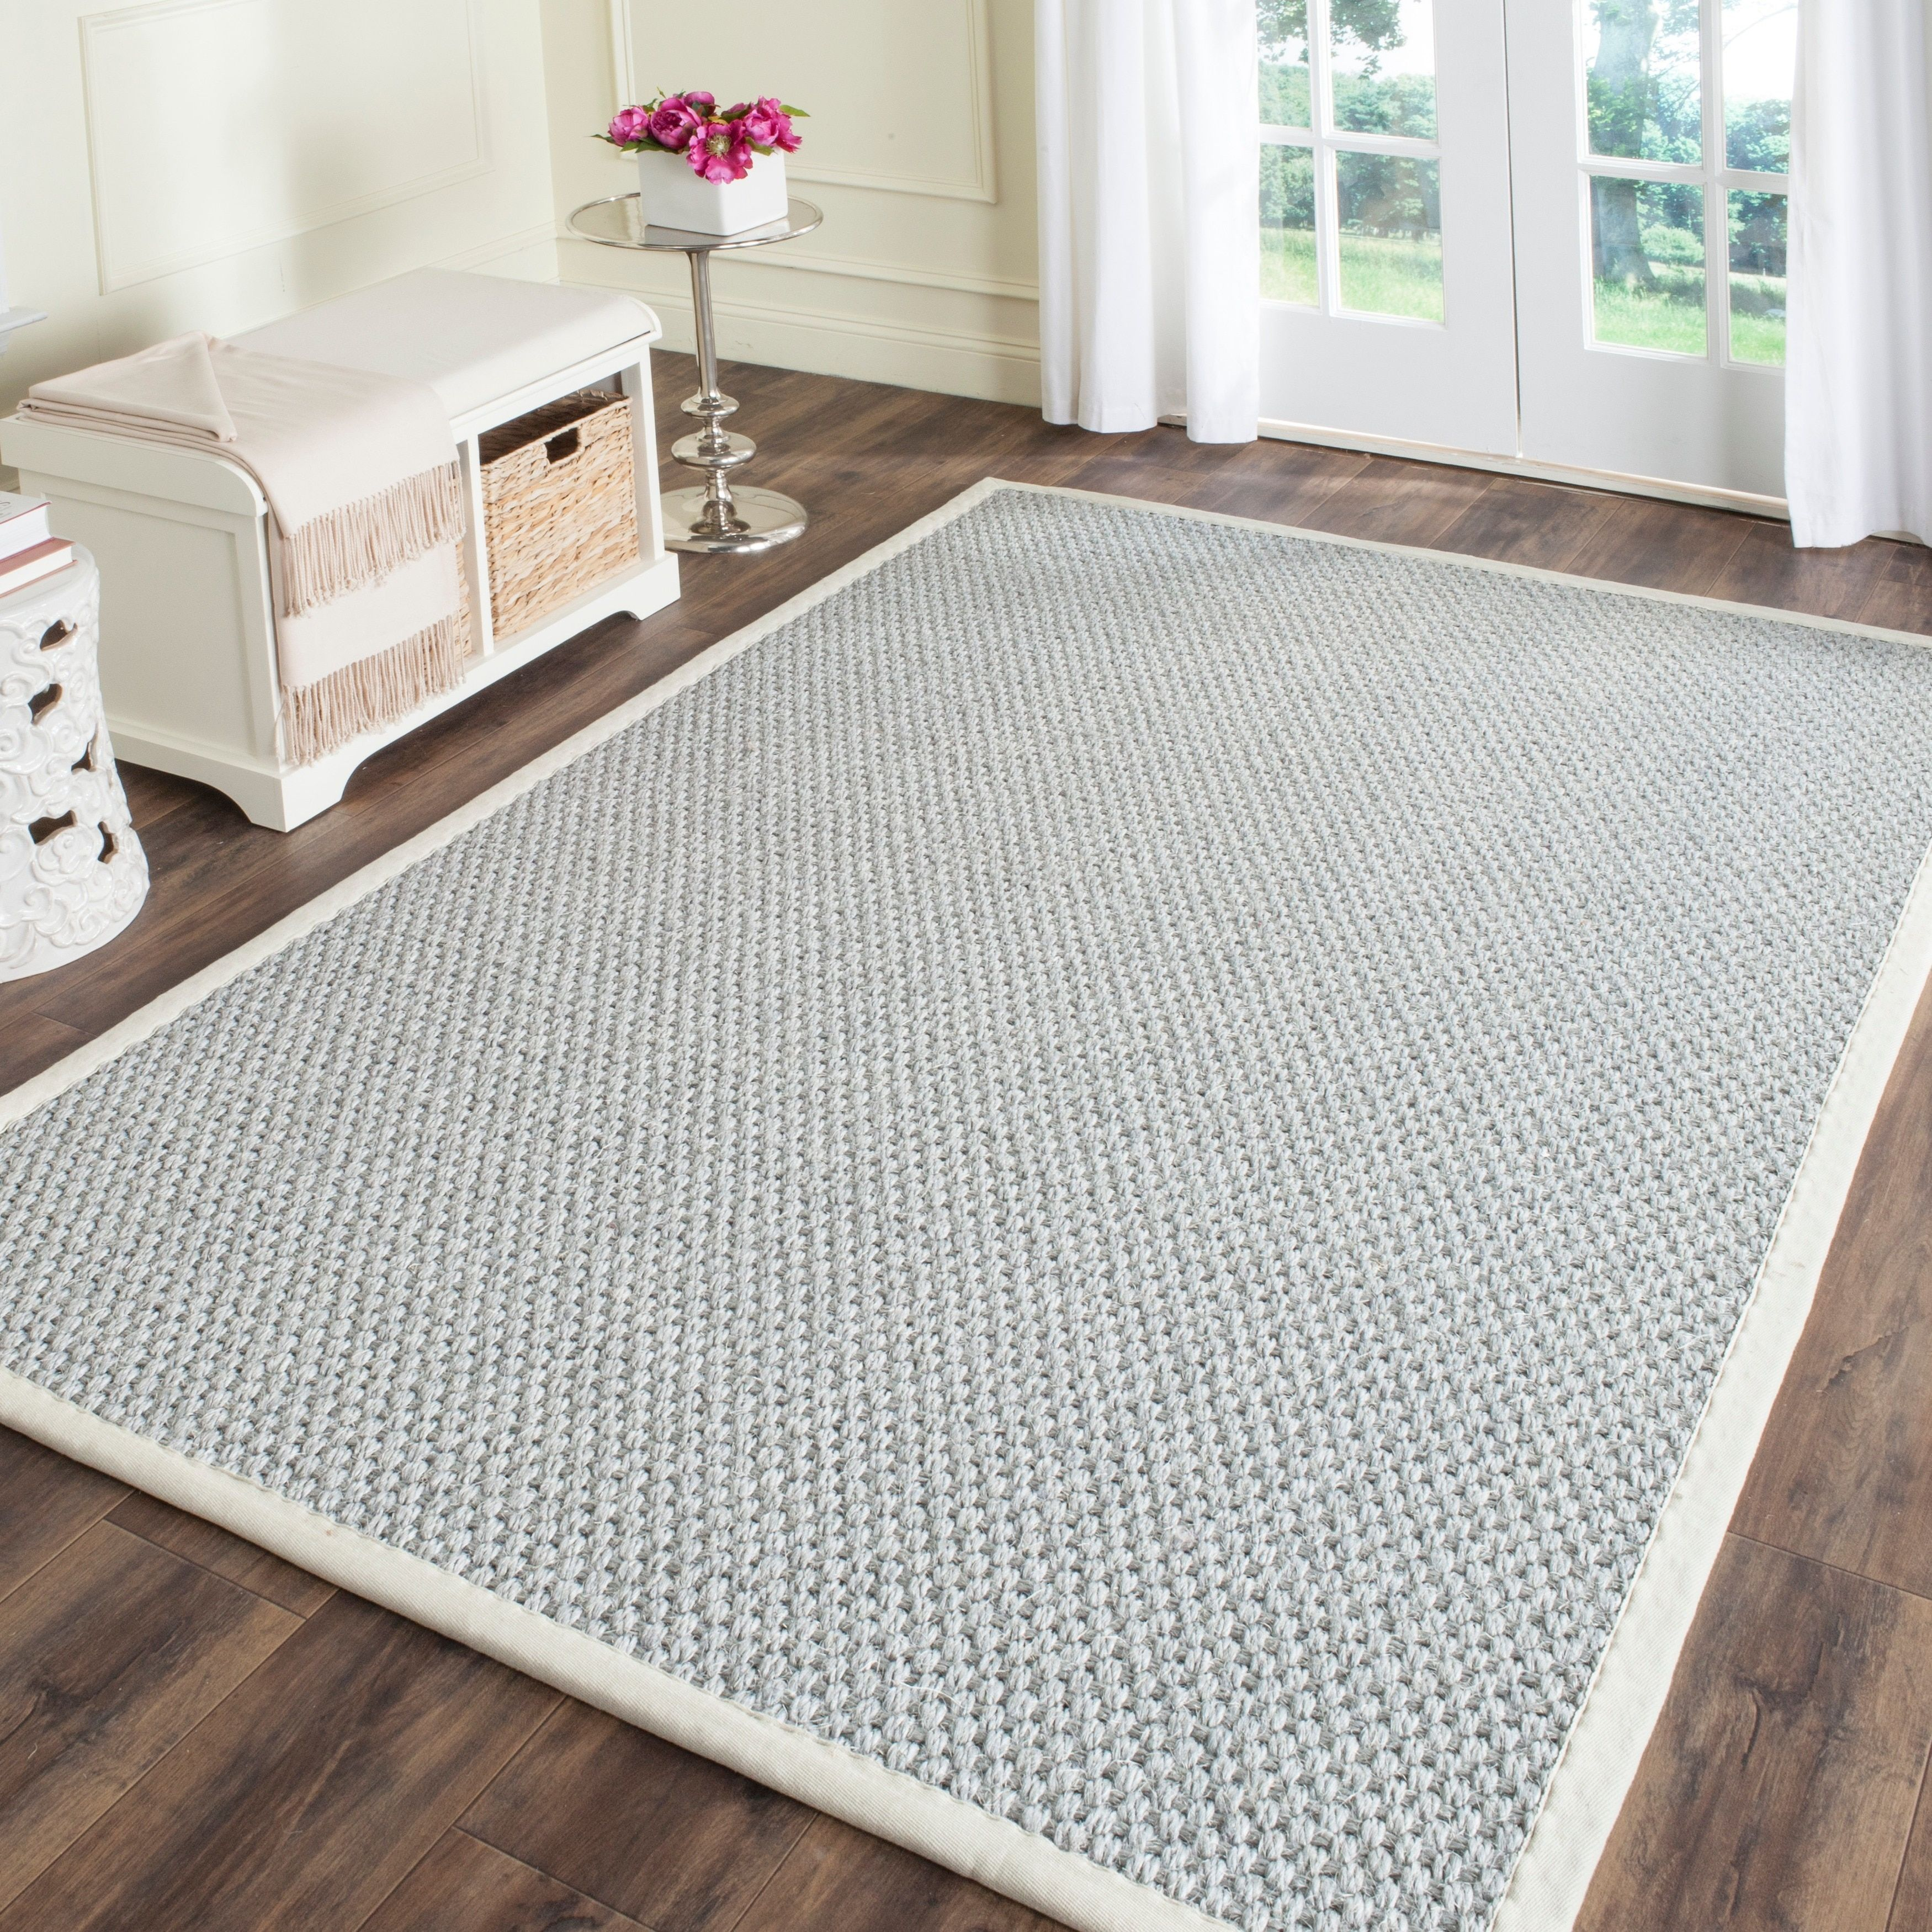 Safavieh Casual Natural Fiber Hand Woven Silver Grey Sisal Rug 8